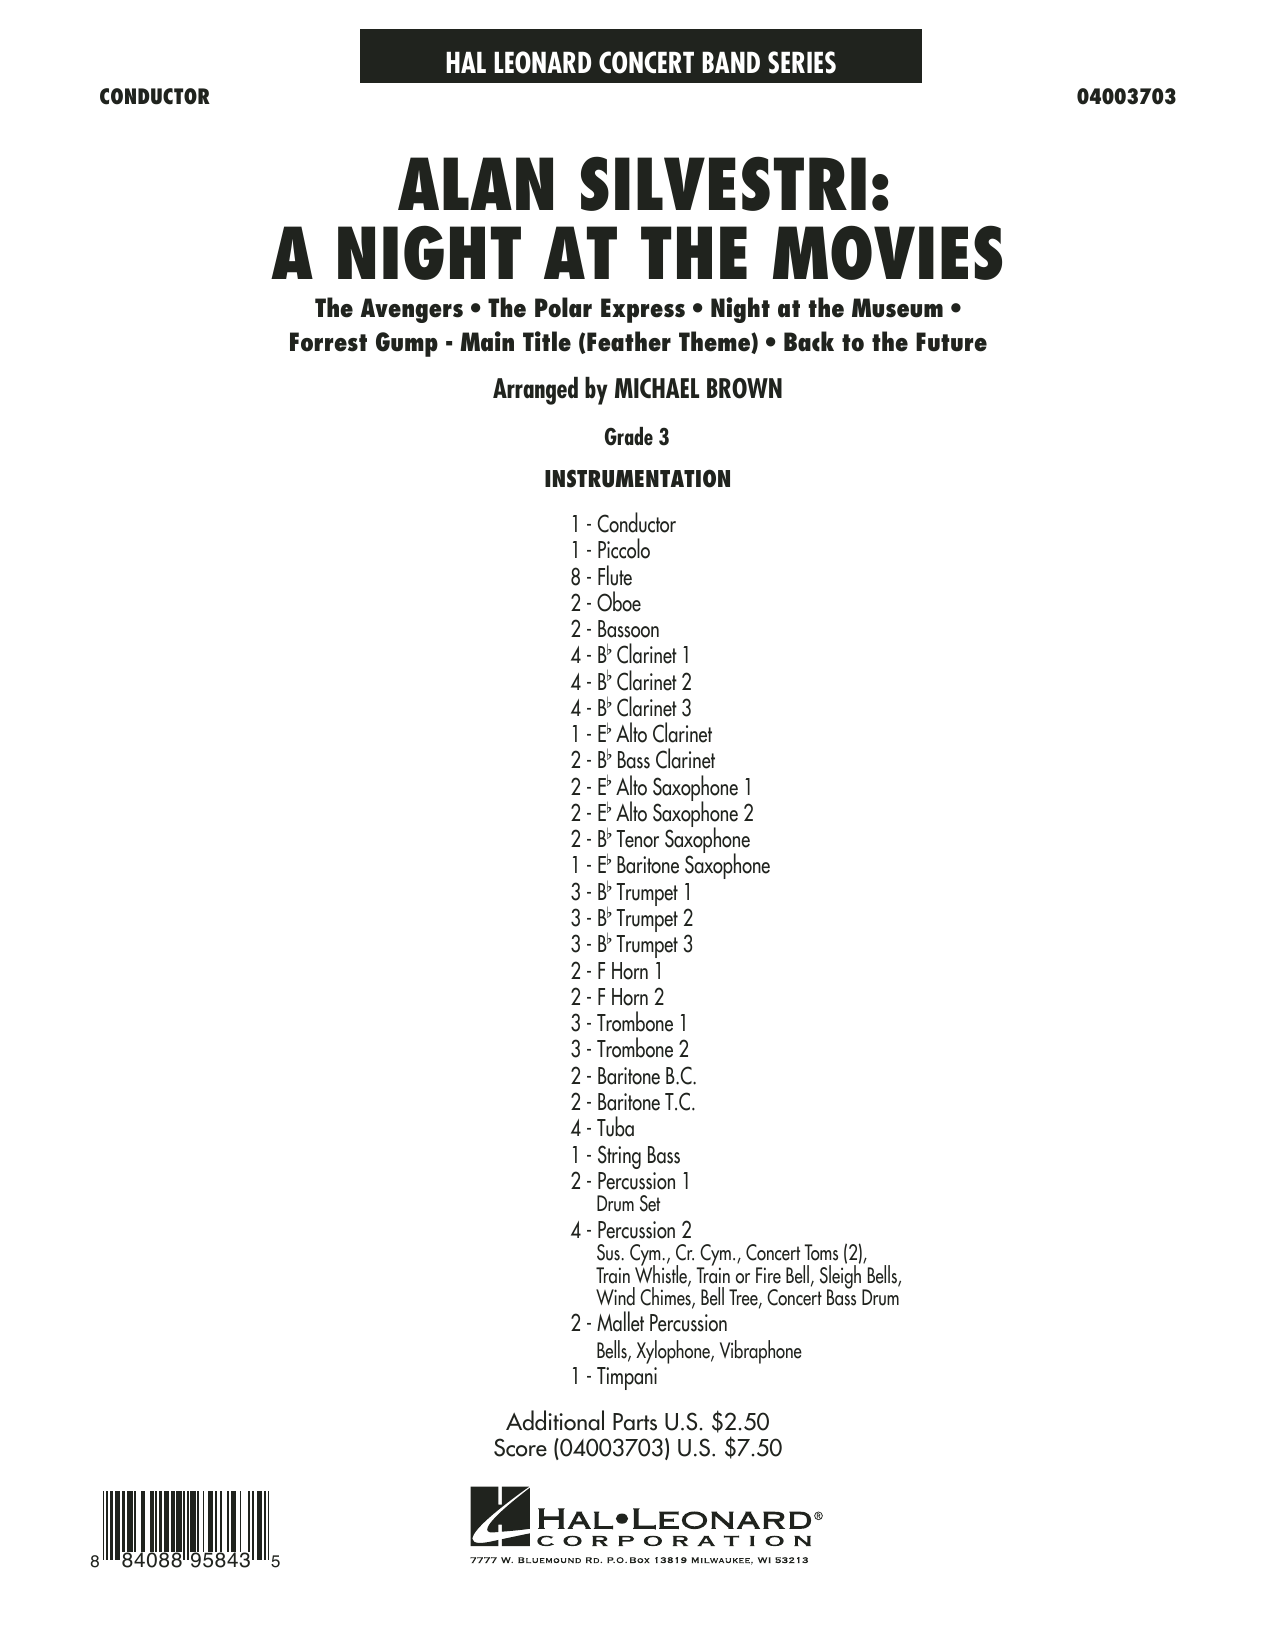 Alan Silvestri: A Night at the Movies (COMPLETE) sheet music for concert band by Alan Silvestri